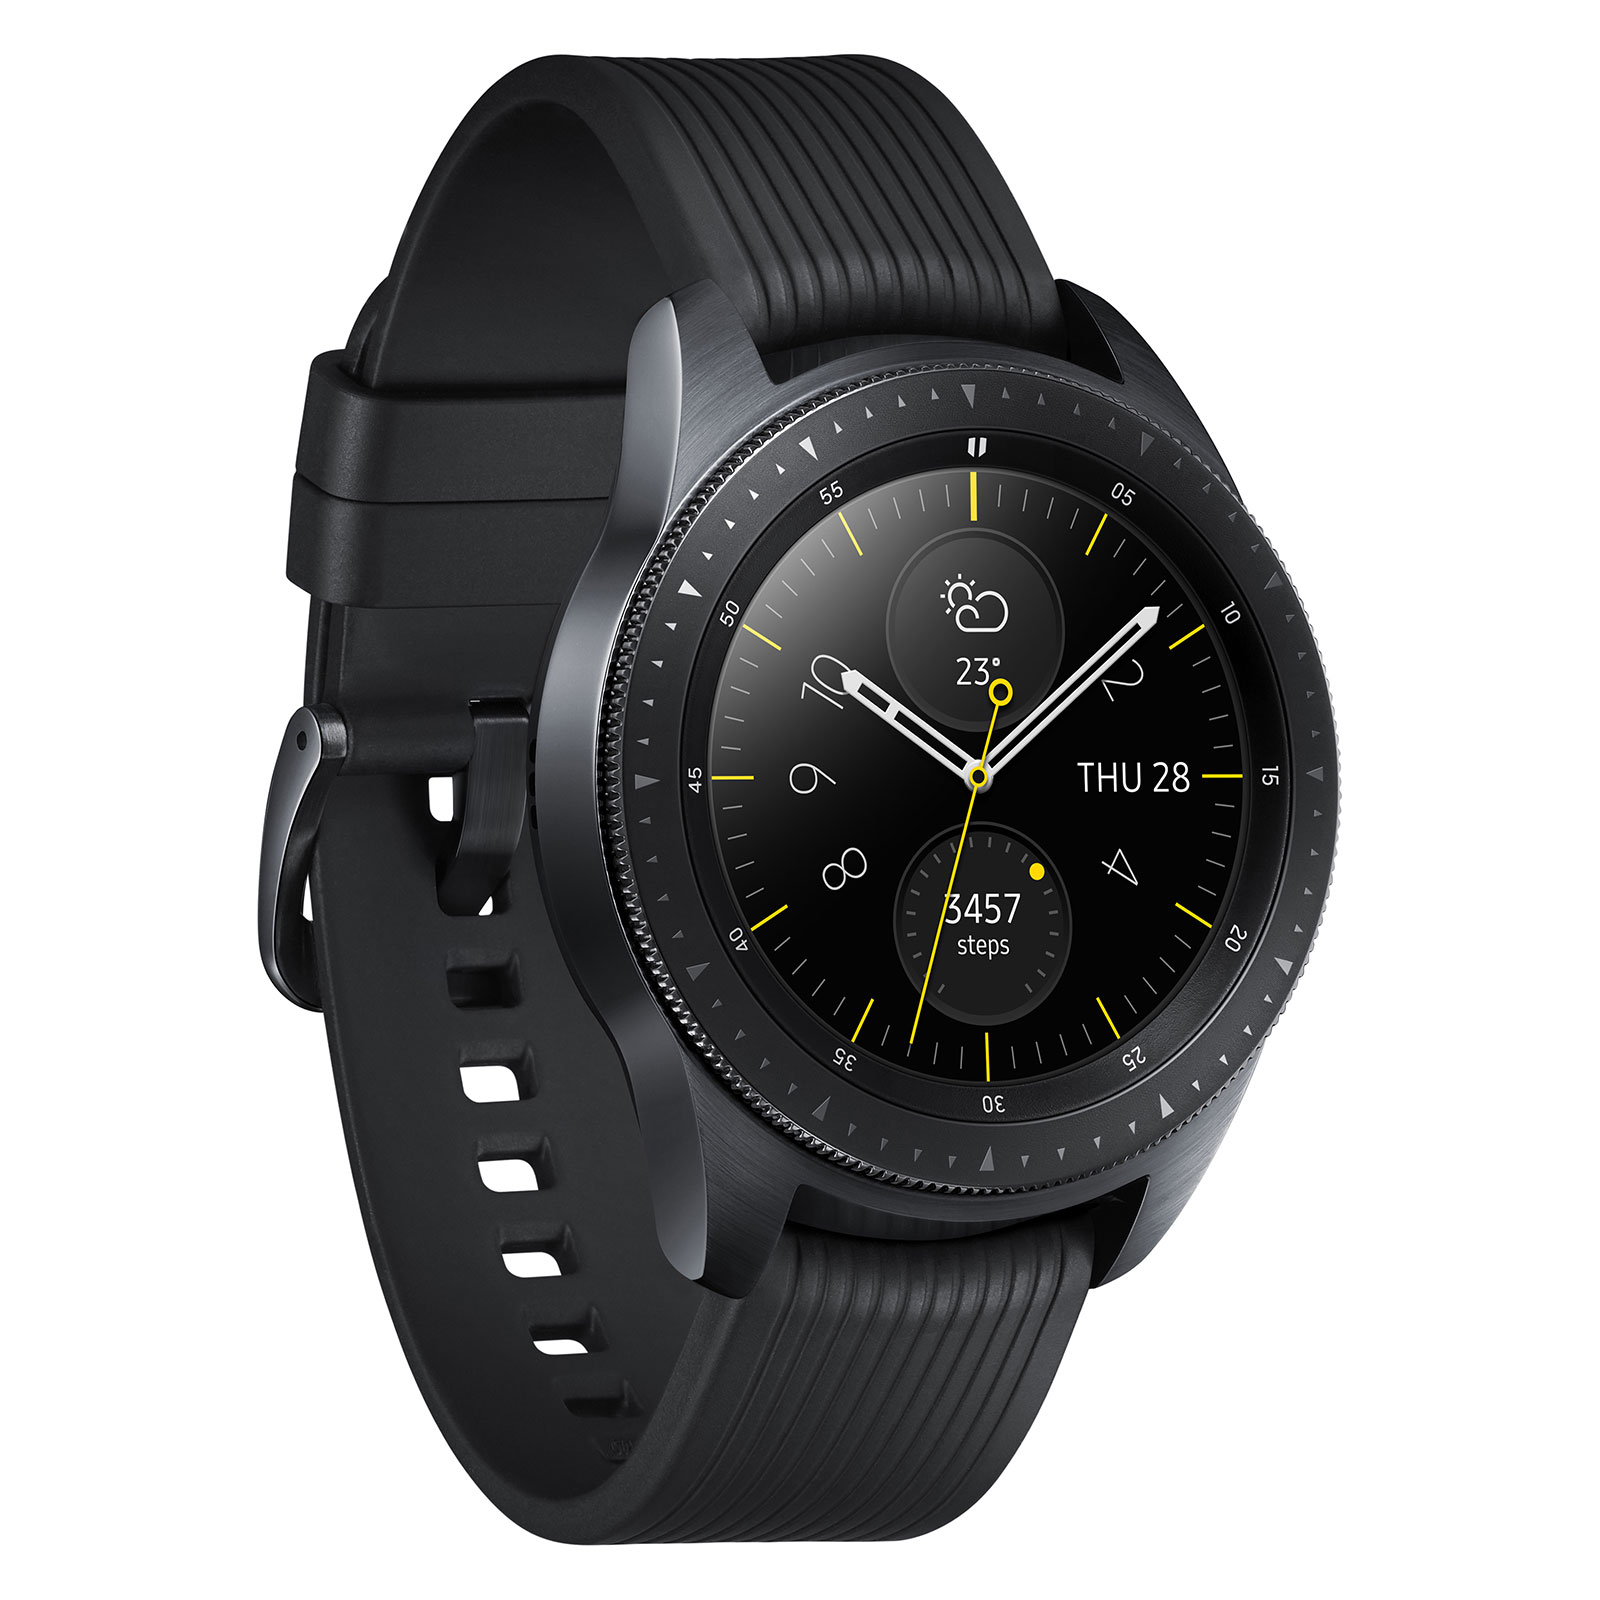 samsung galaxy watch noir carbone montre connect e samsung sur. Black Bedroom Furniture Sets. Home Design Ideas